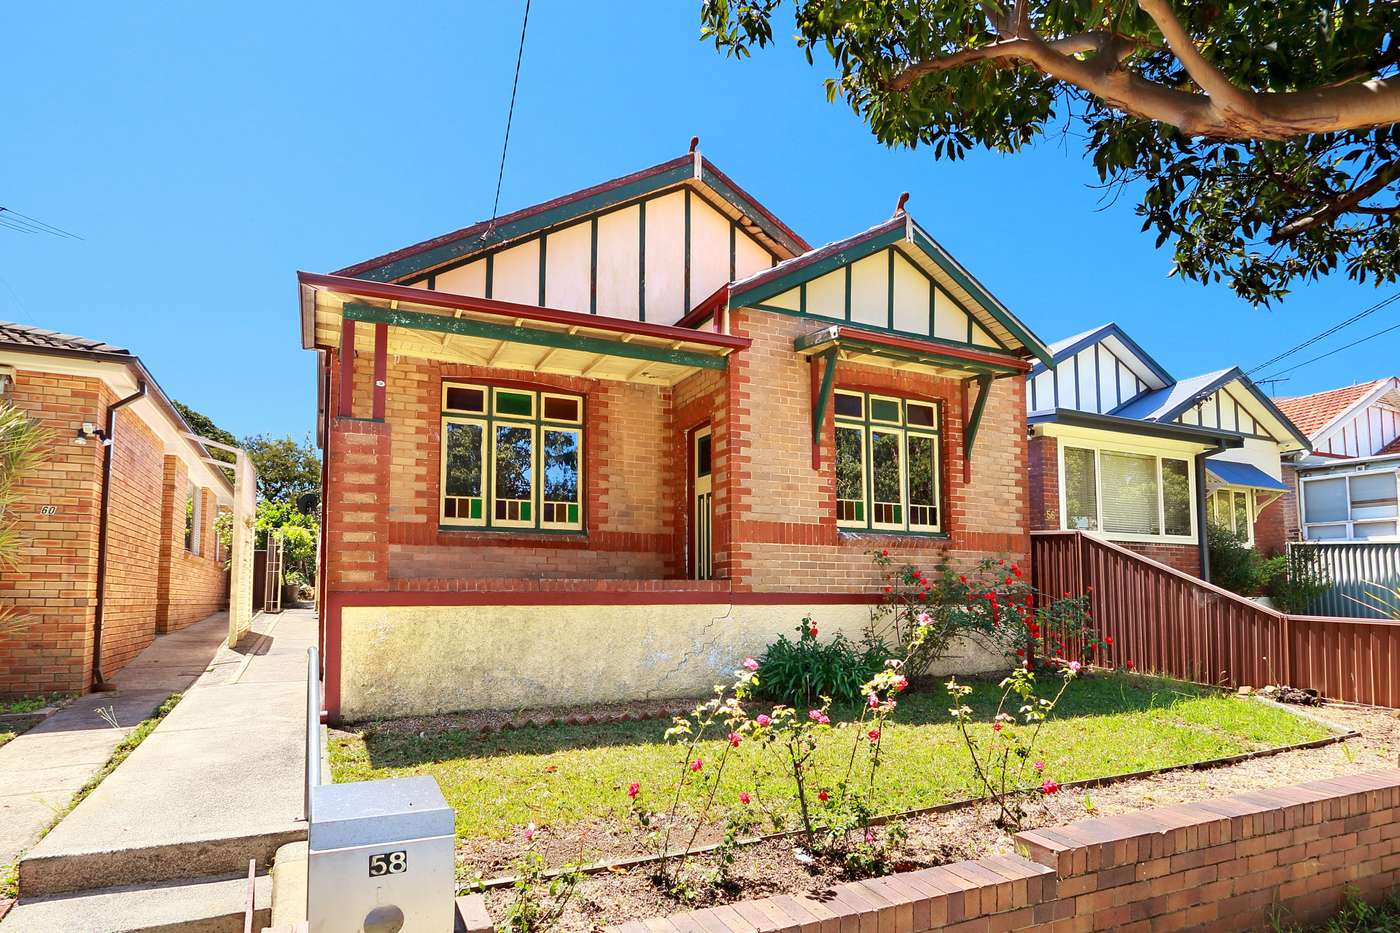 Main view of Homely house listing, 58 Patrick Street, Hurstville, NSW 2220